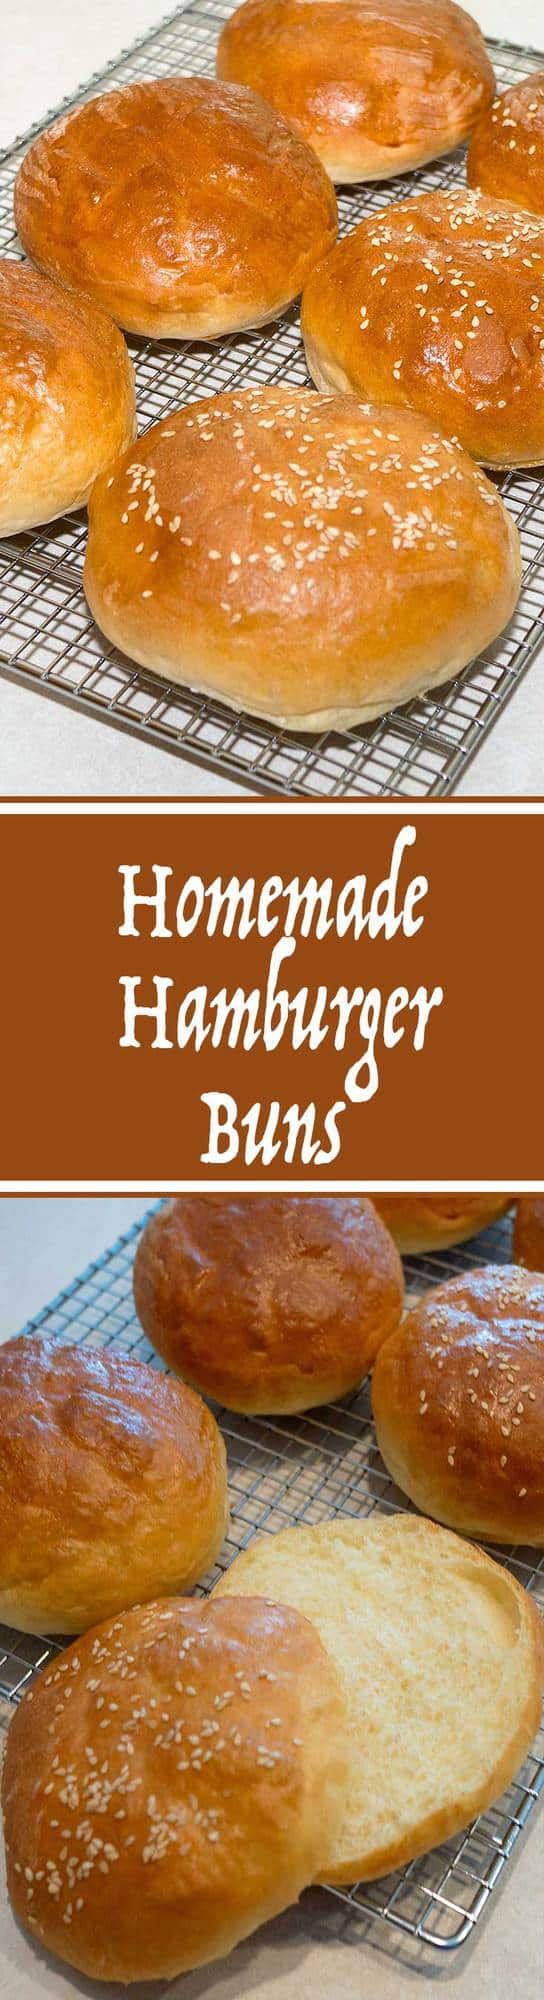 Look no further for the ultimate hamburger bun. These Homemade Hamburger Buns are not only quick and easy to make, but also light and fluffy.